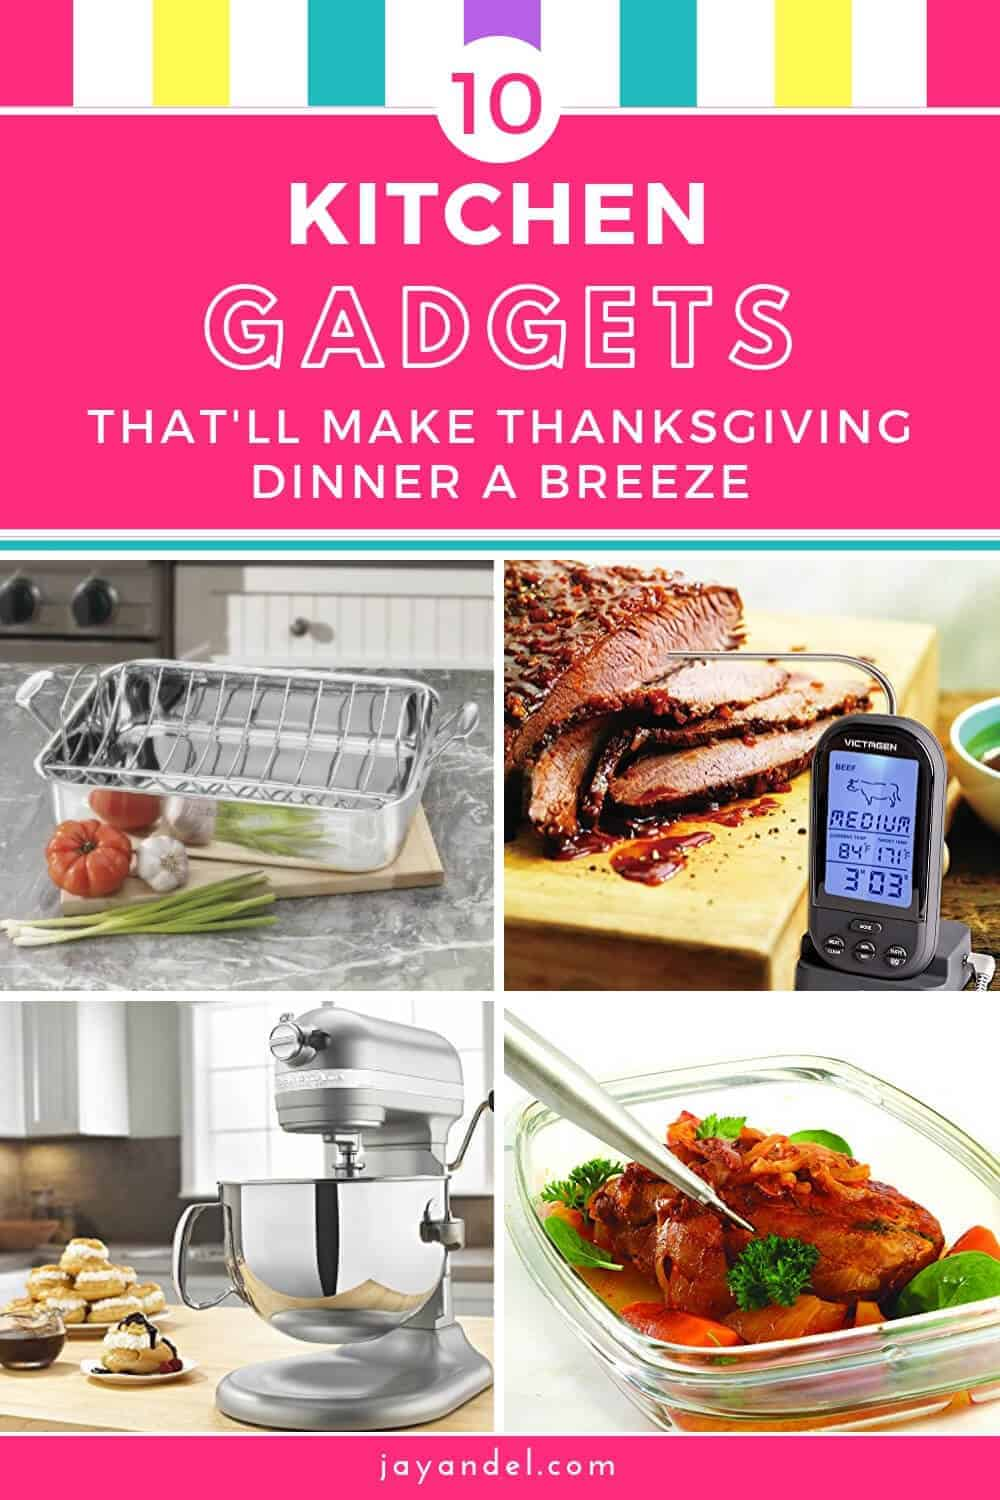 10 kitchen gadgets for thanksgiving dinner